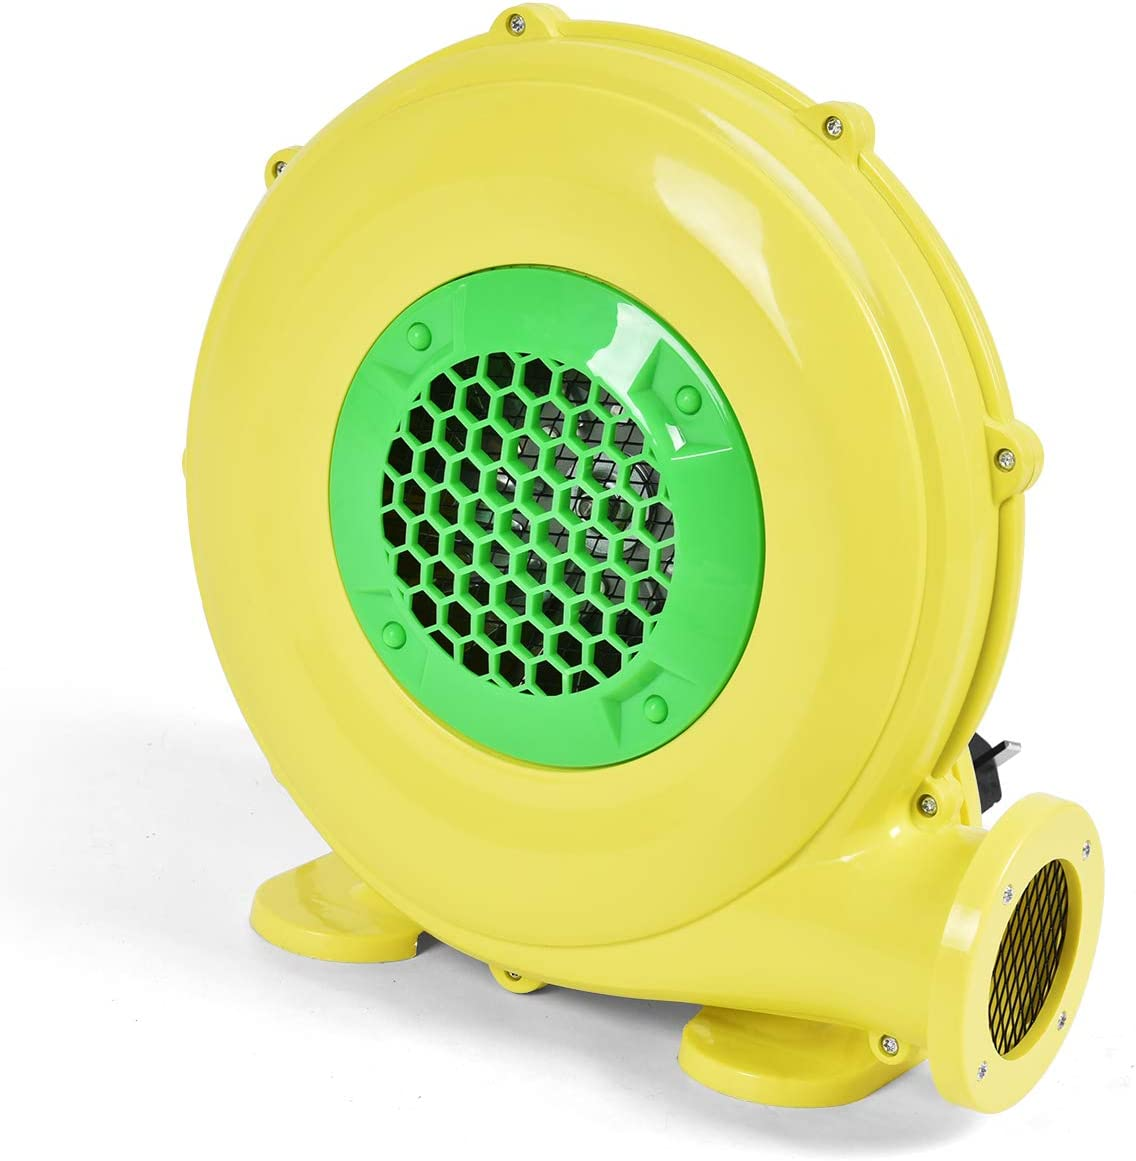 Costzon Air Blower, Pump Fan Commercial Inflatable Bouncer Blower, Perfect for Inflatable Bounce House, Jumper, Bouncy Castle 480 Watt 0.64HP Yellow